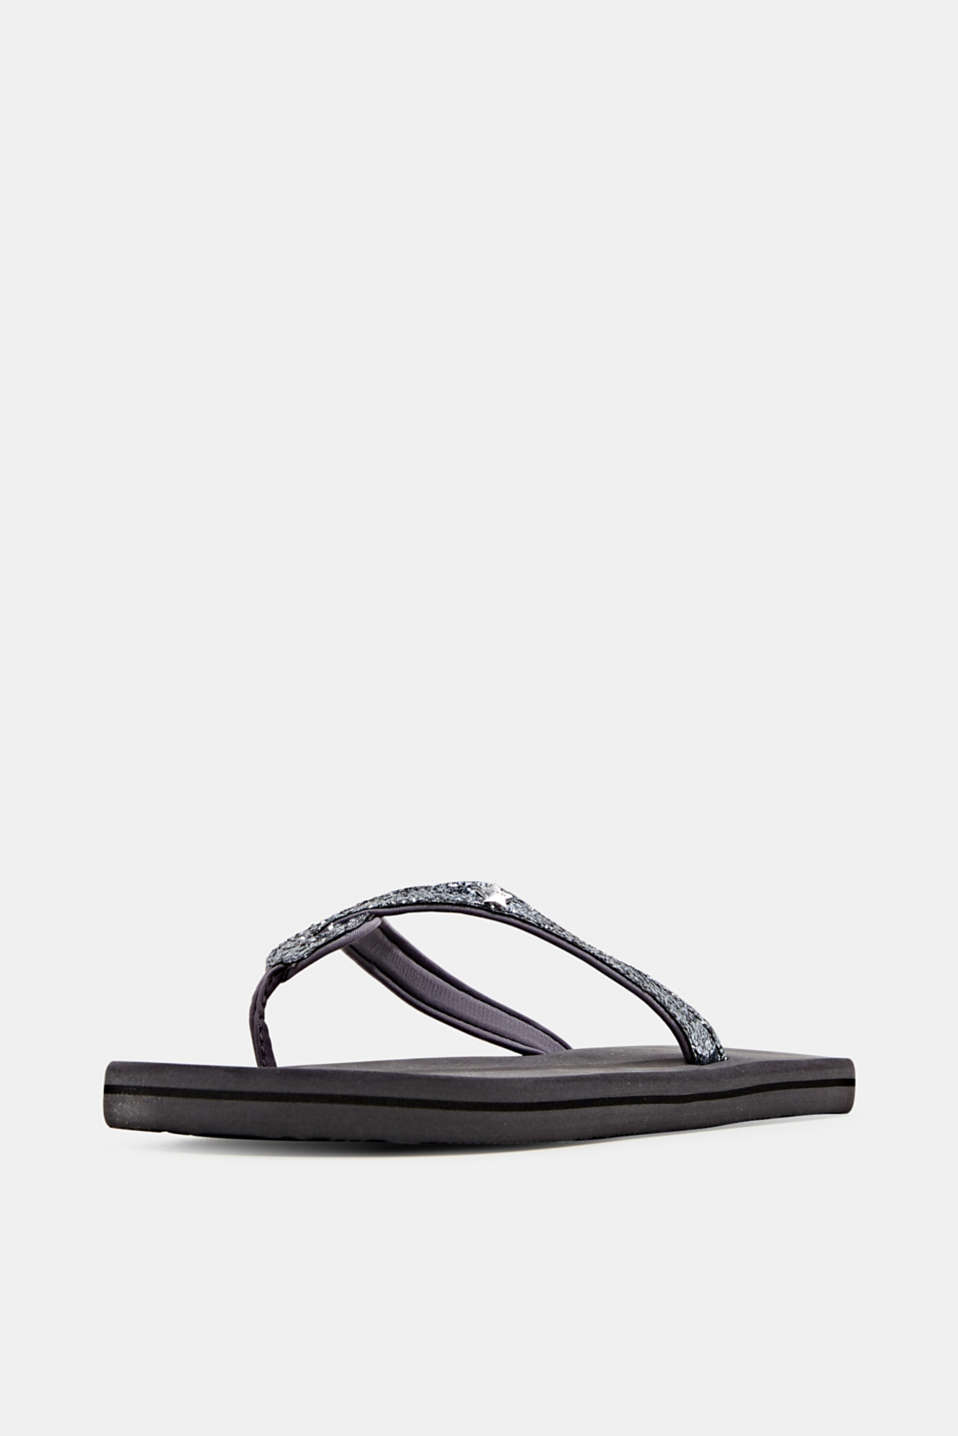 Slip slops with glittery straps, GREY, detail image number 2